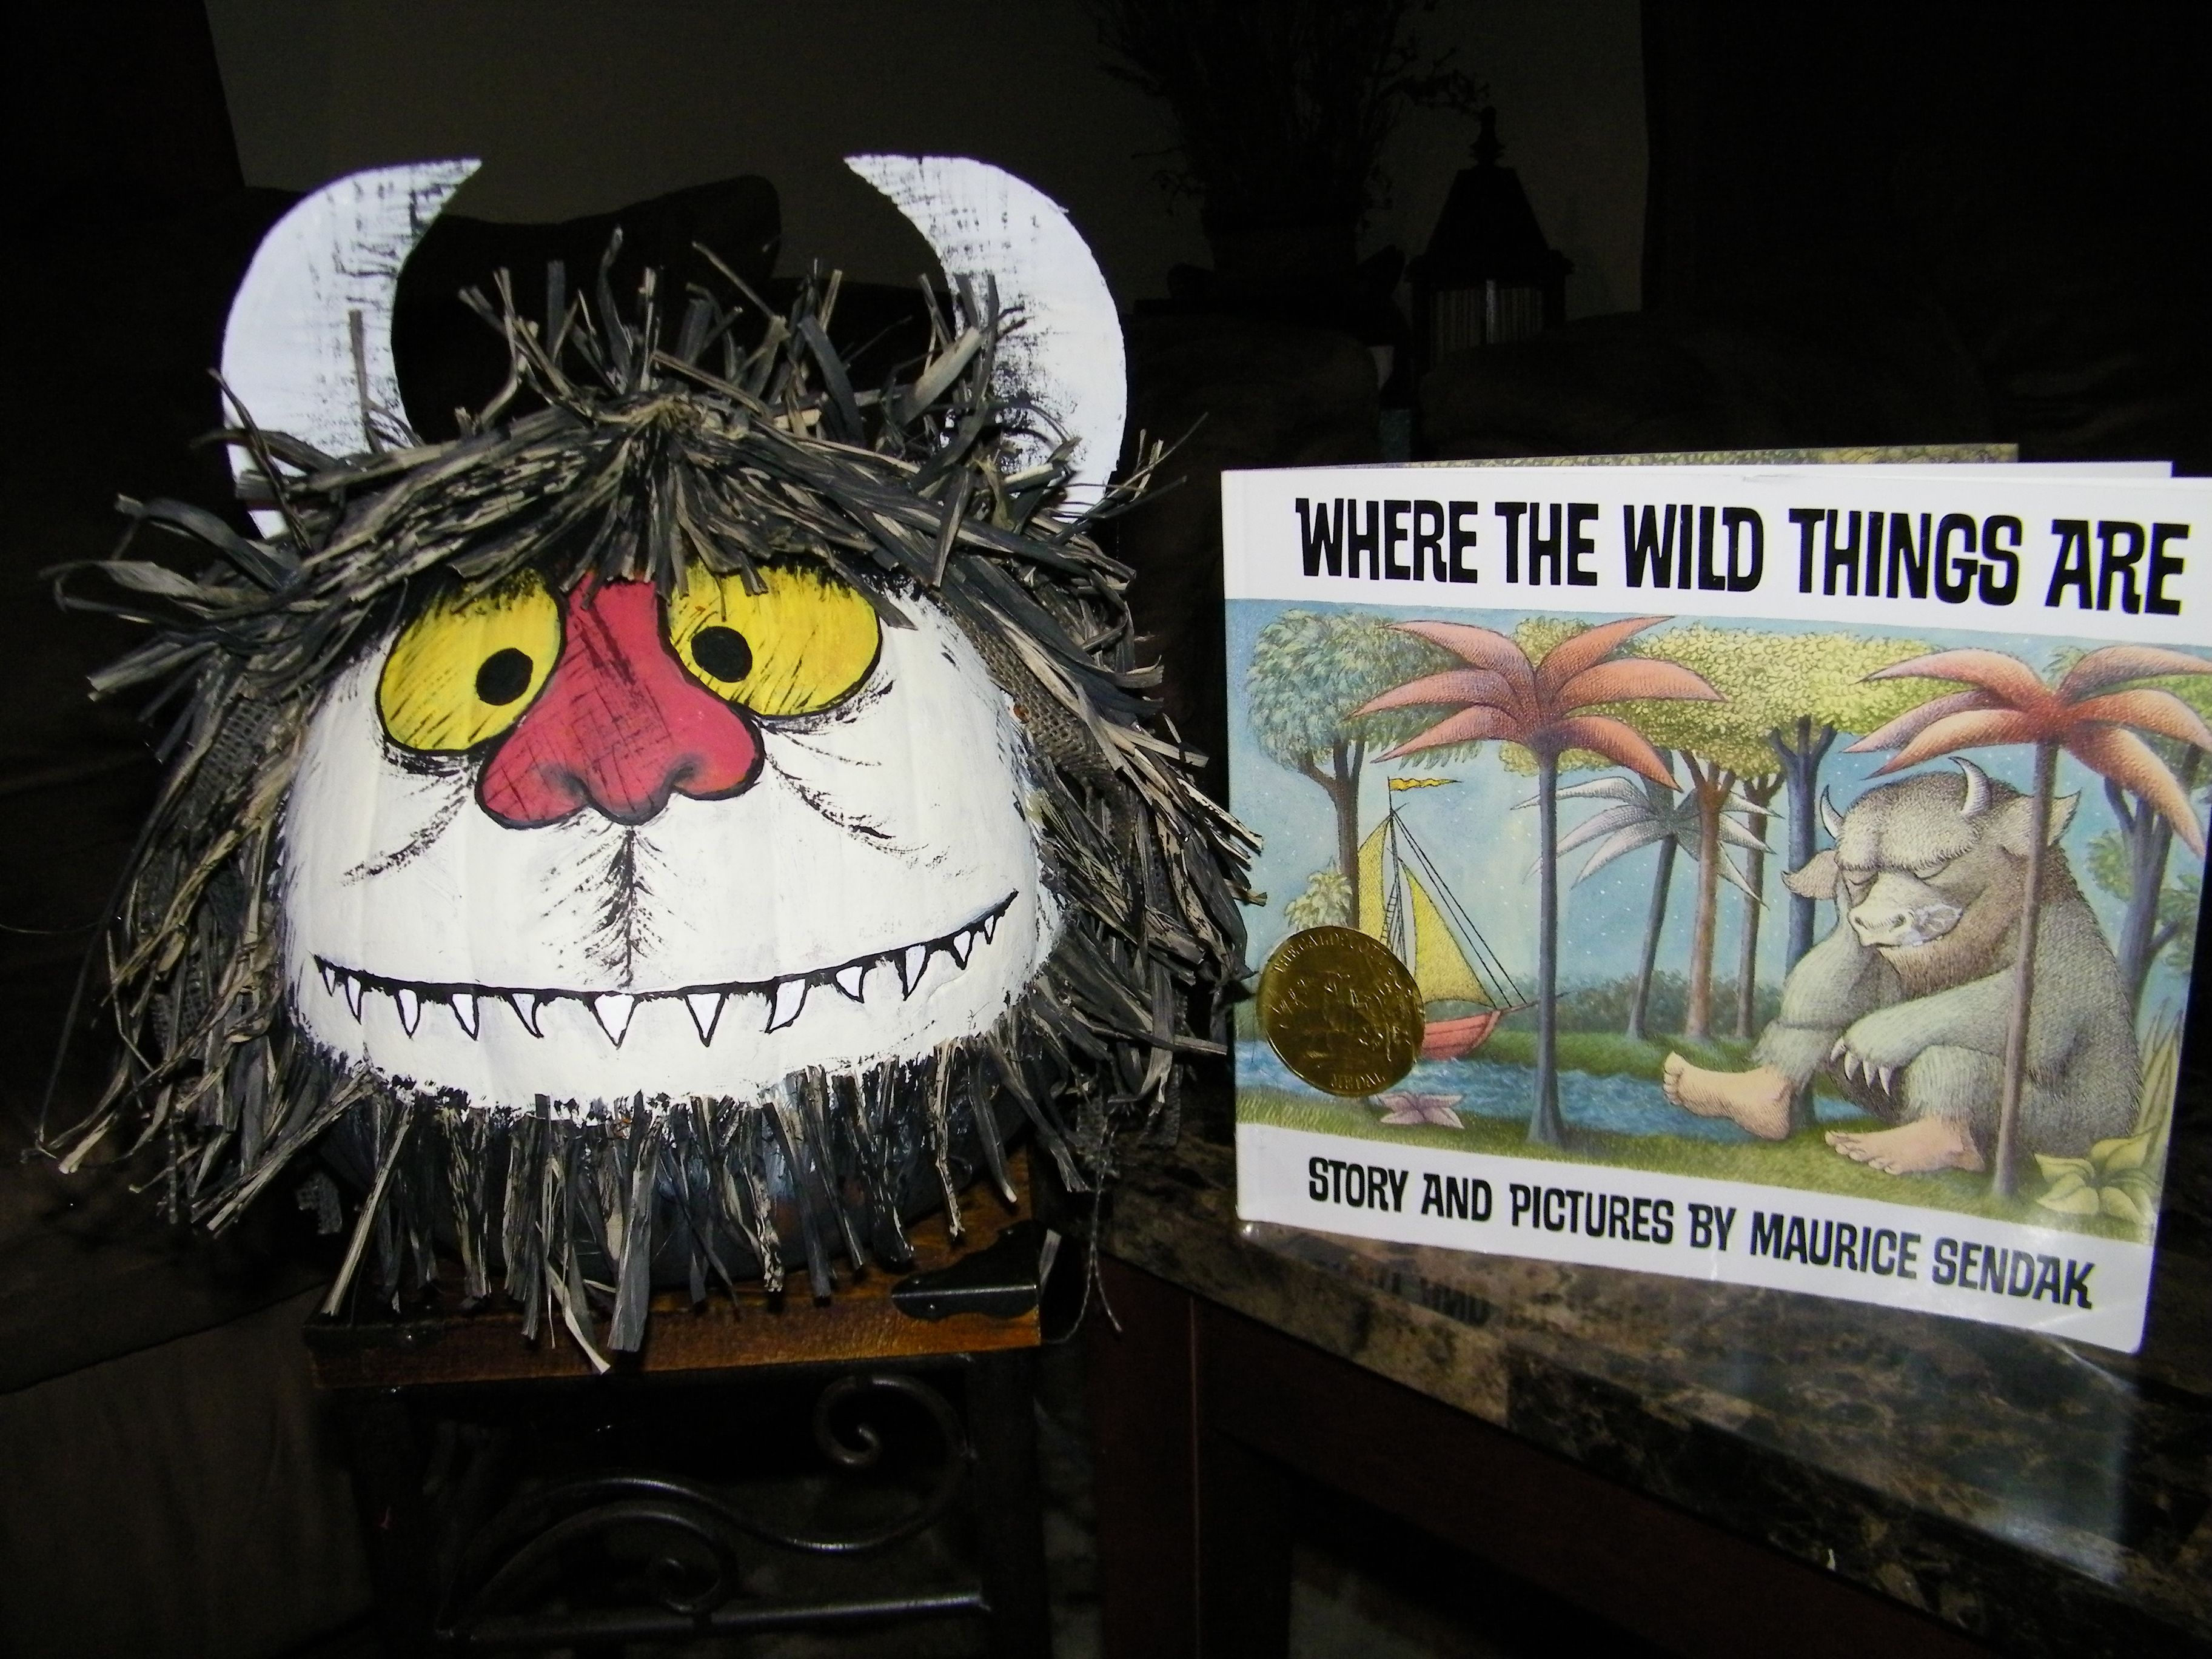 Where The Wild Things Are!  My daughter and I made this for a pumpkin character contest for her school. Thought I would share the idea.